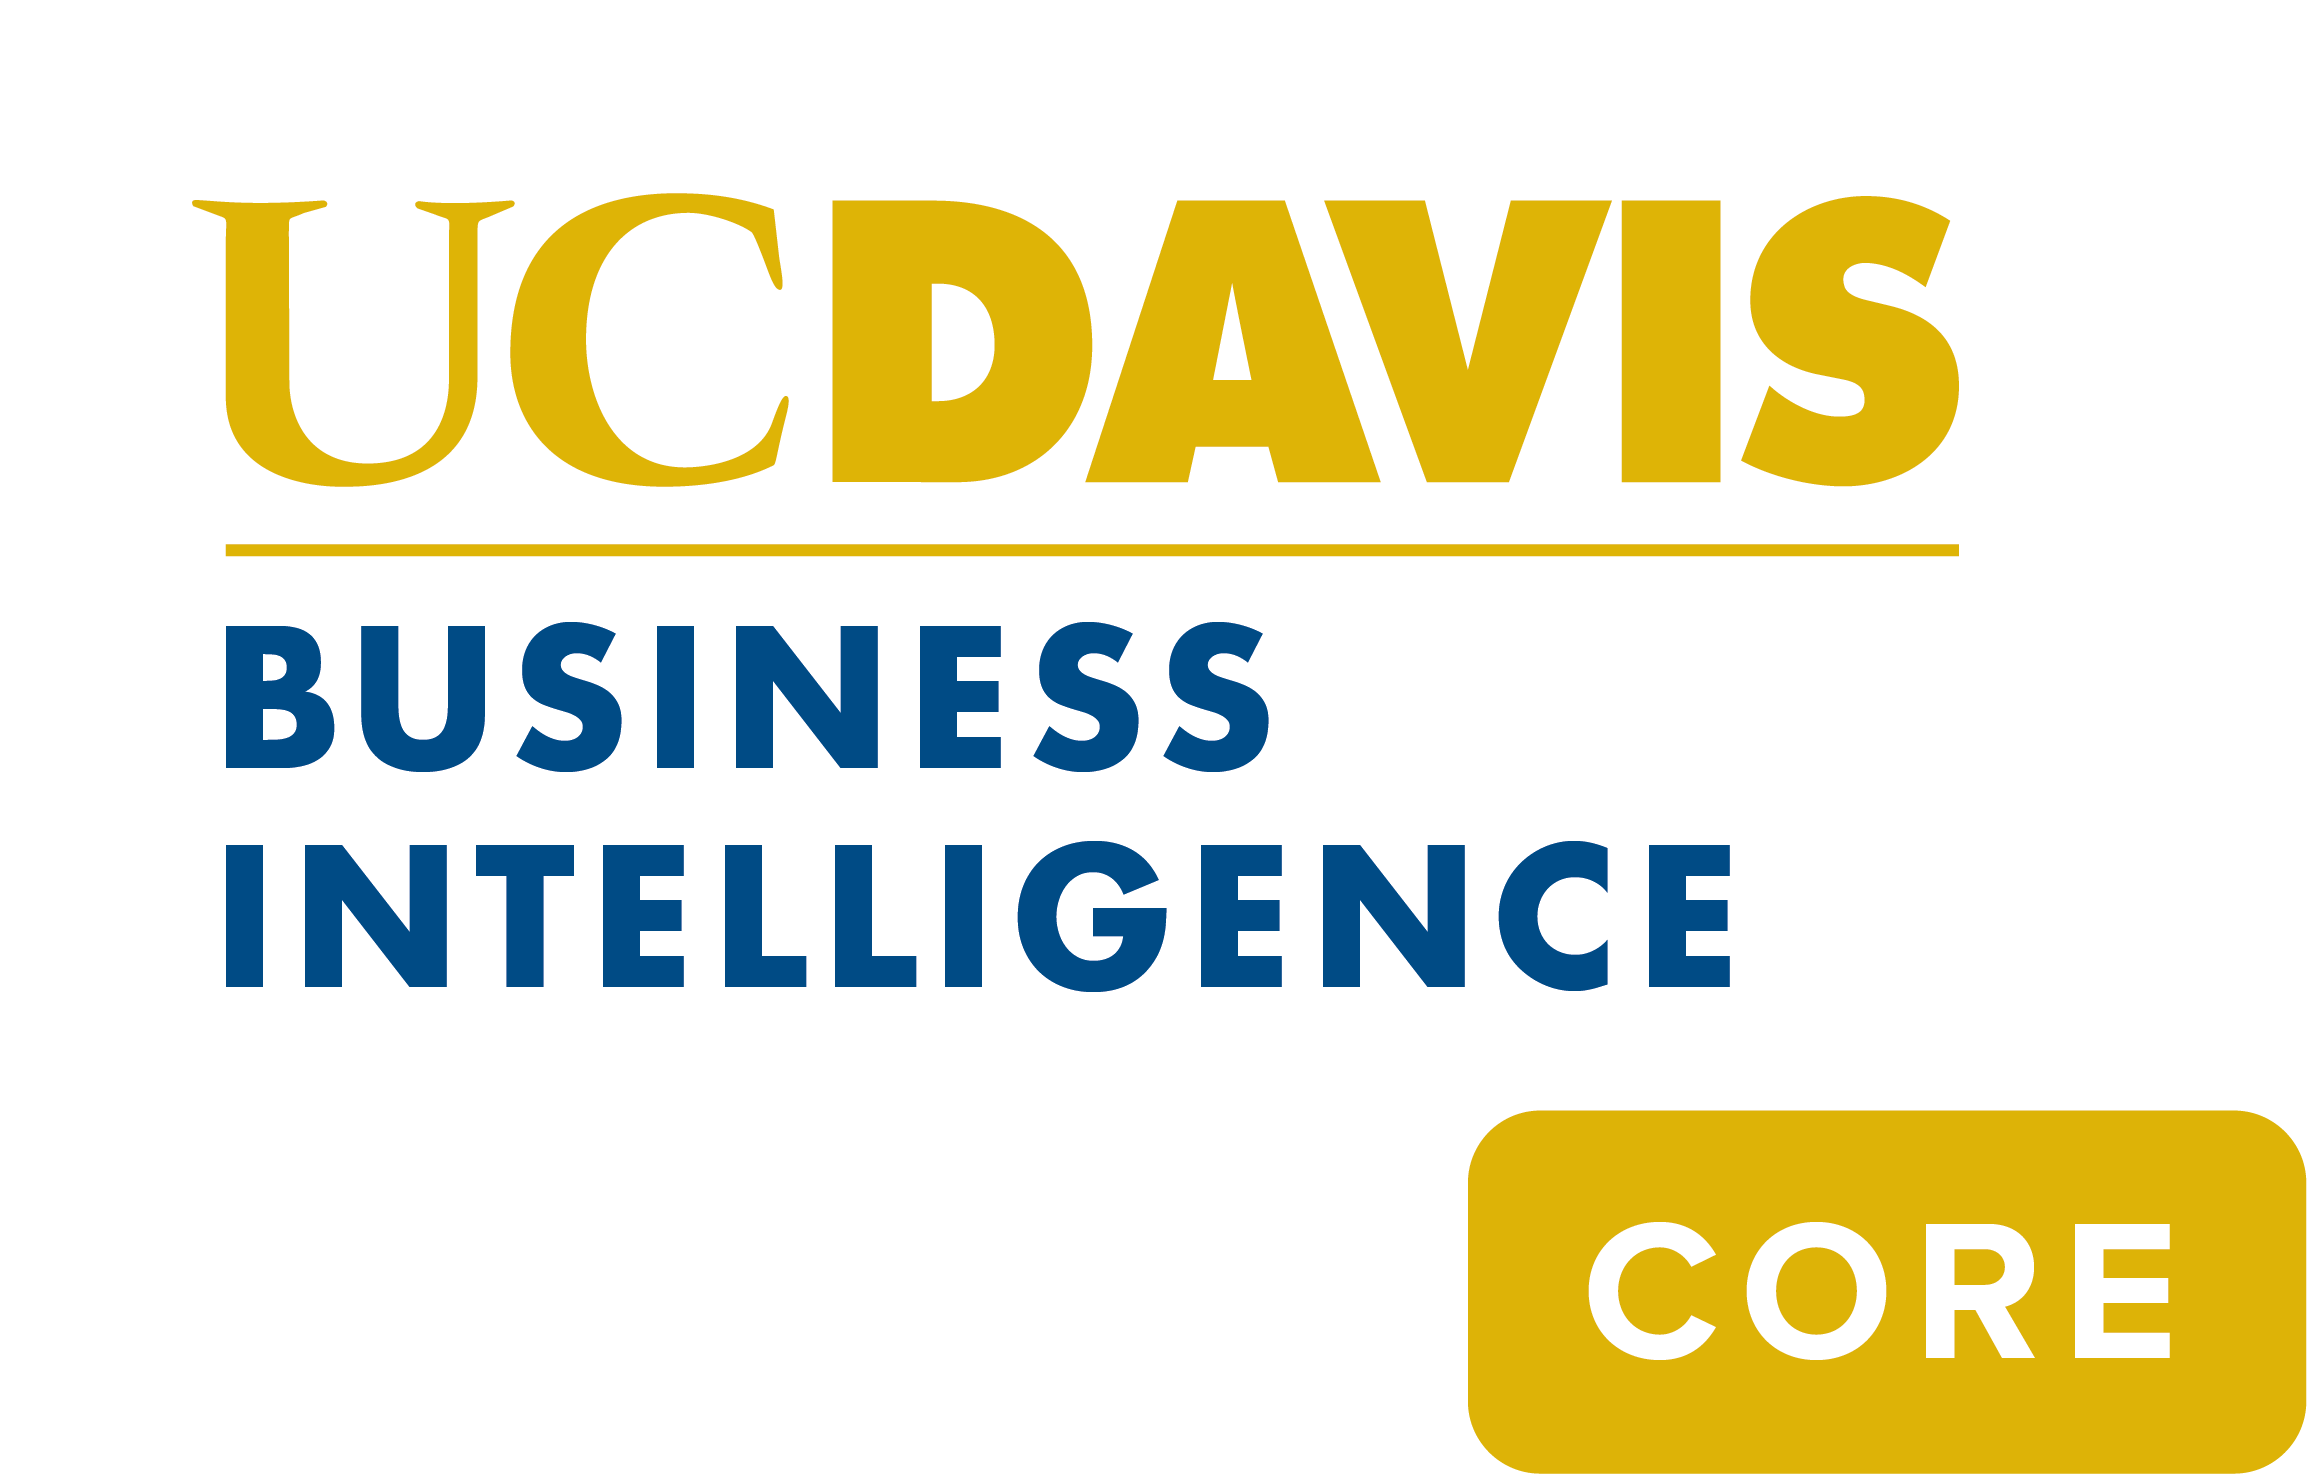 business intelligence core logo